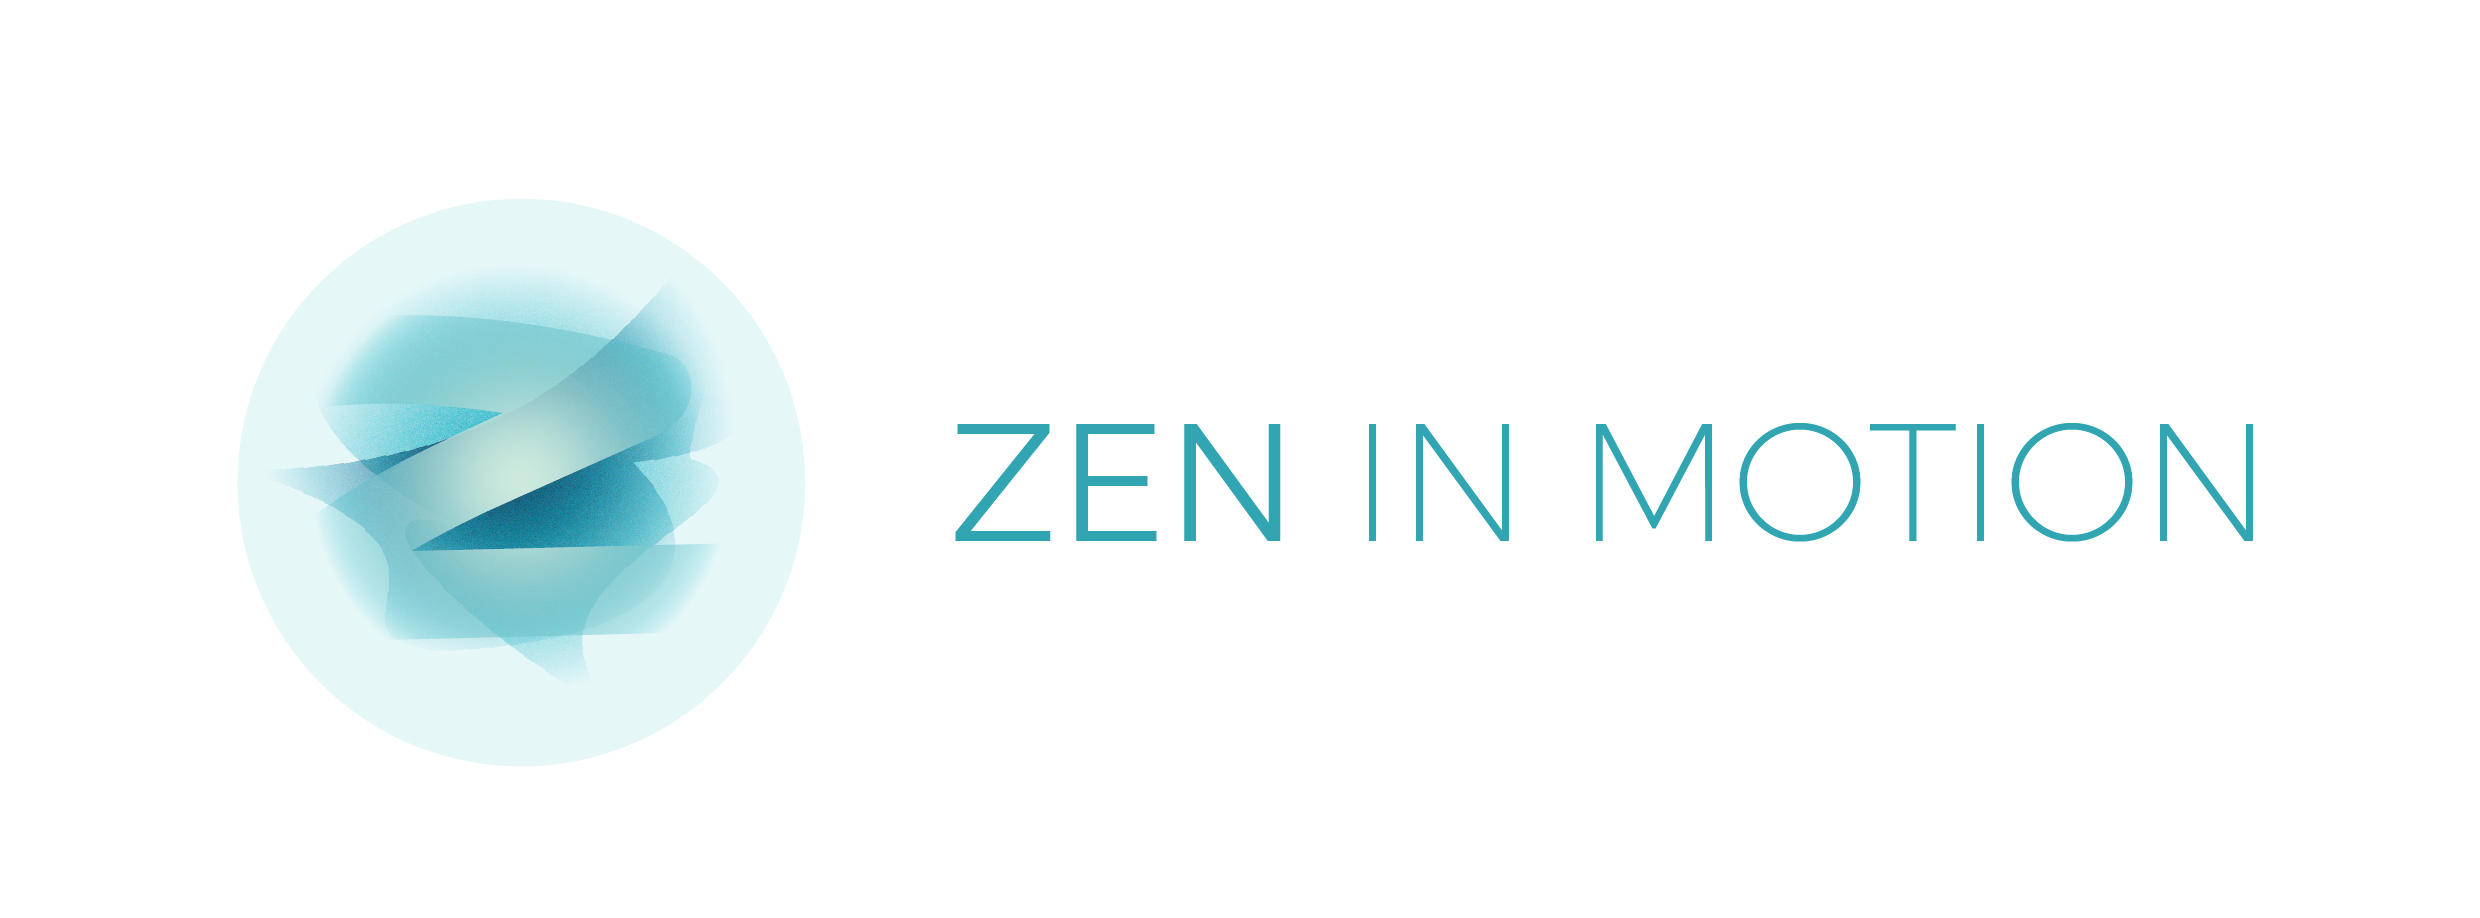 Zen_in_motion_belgium